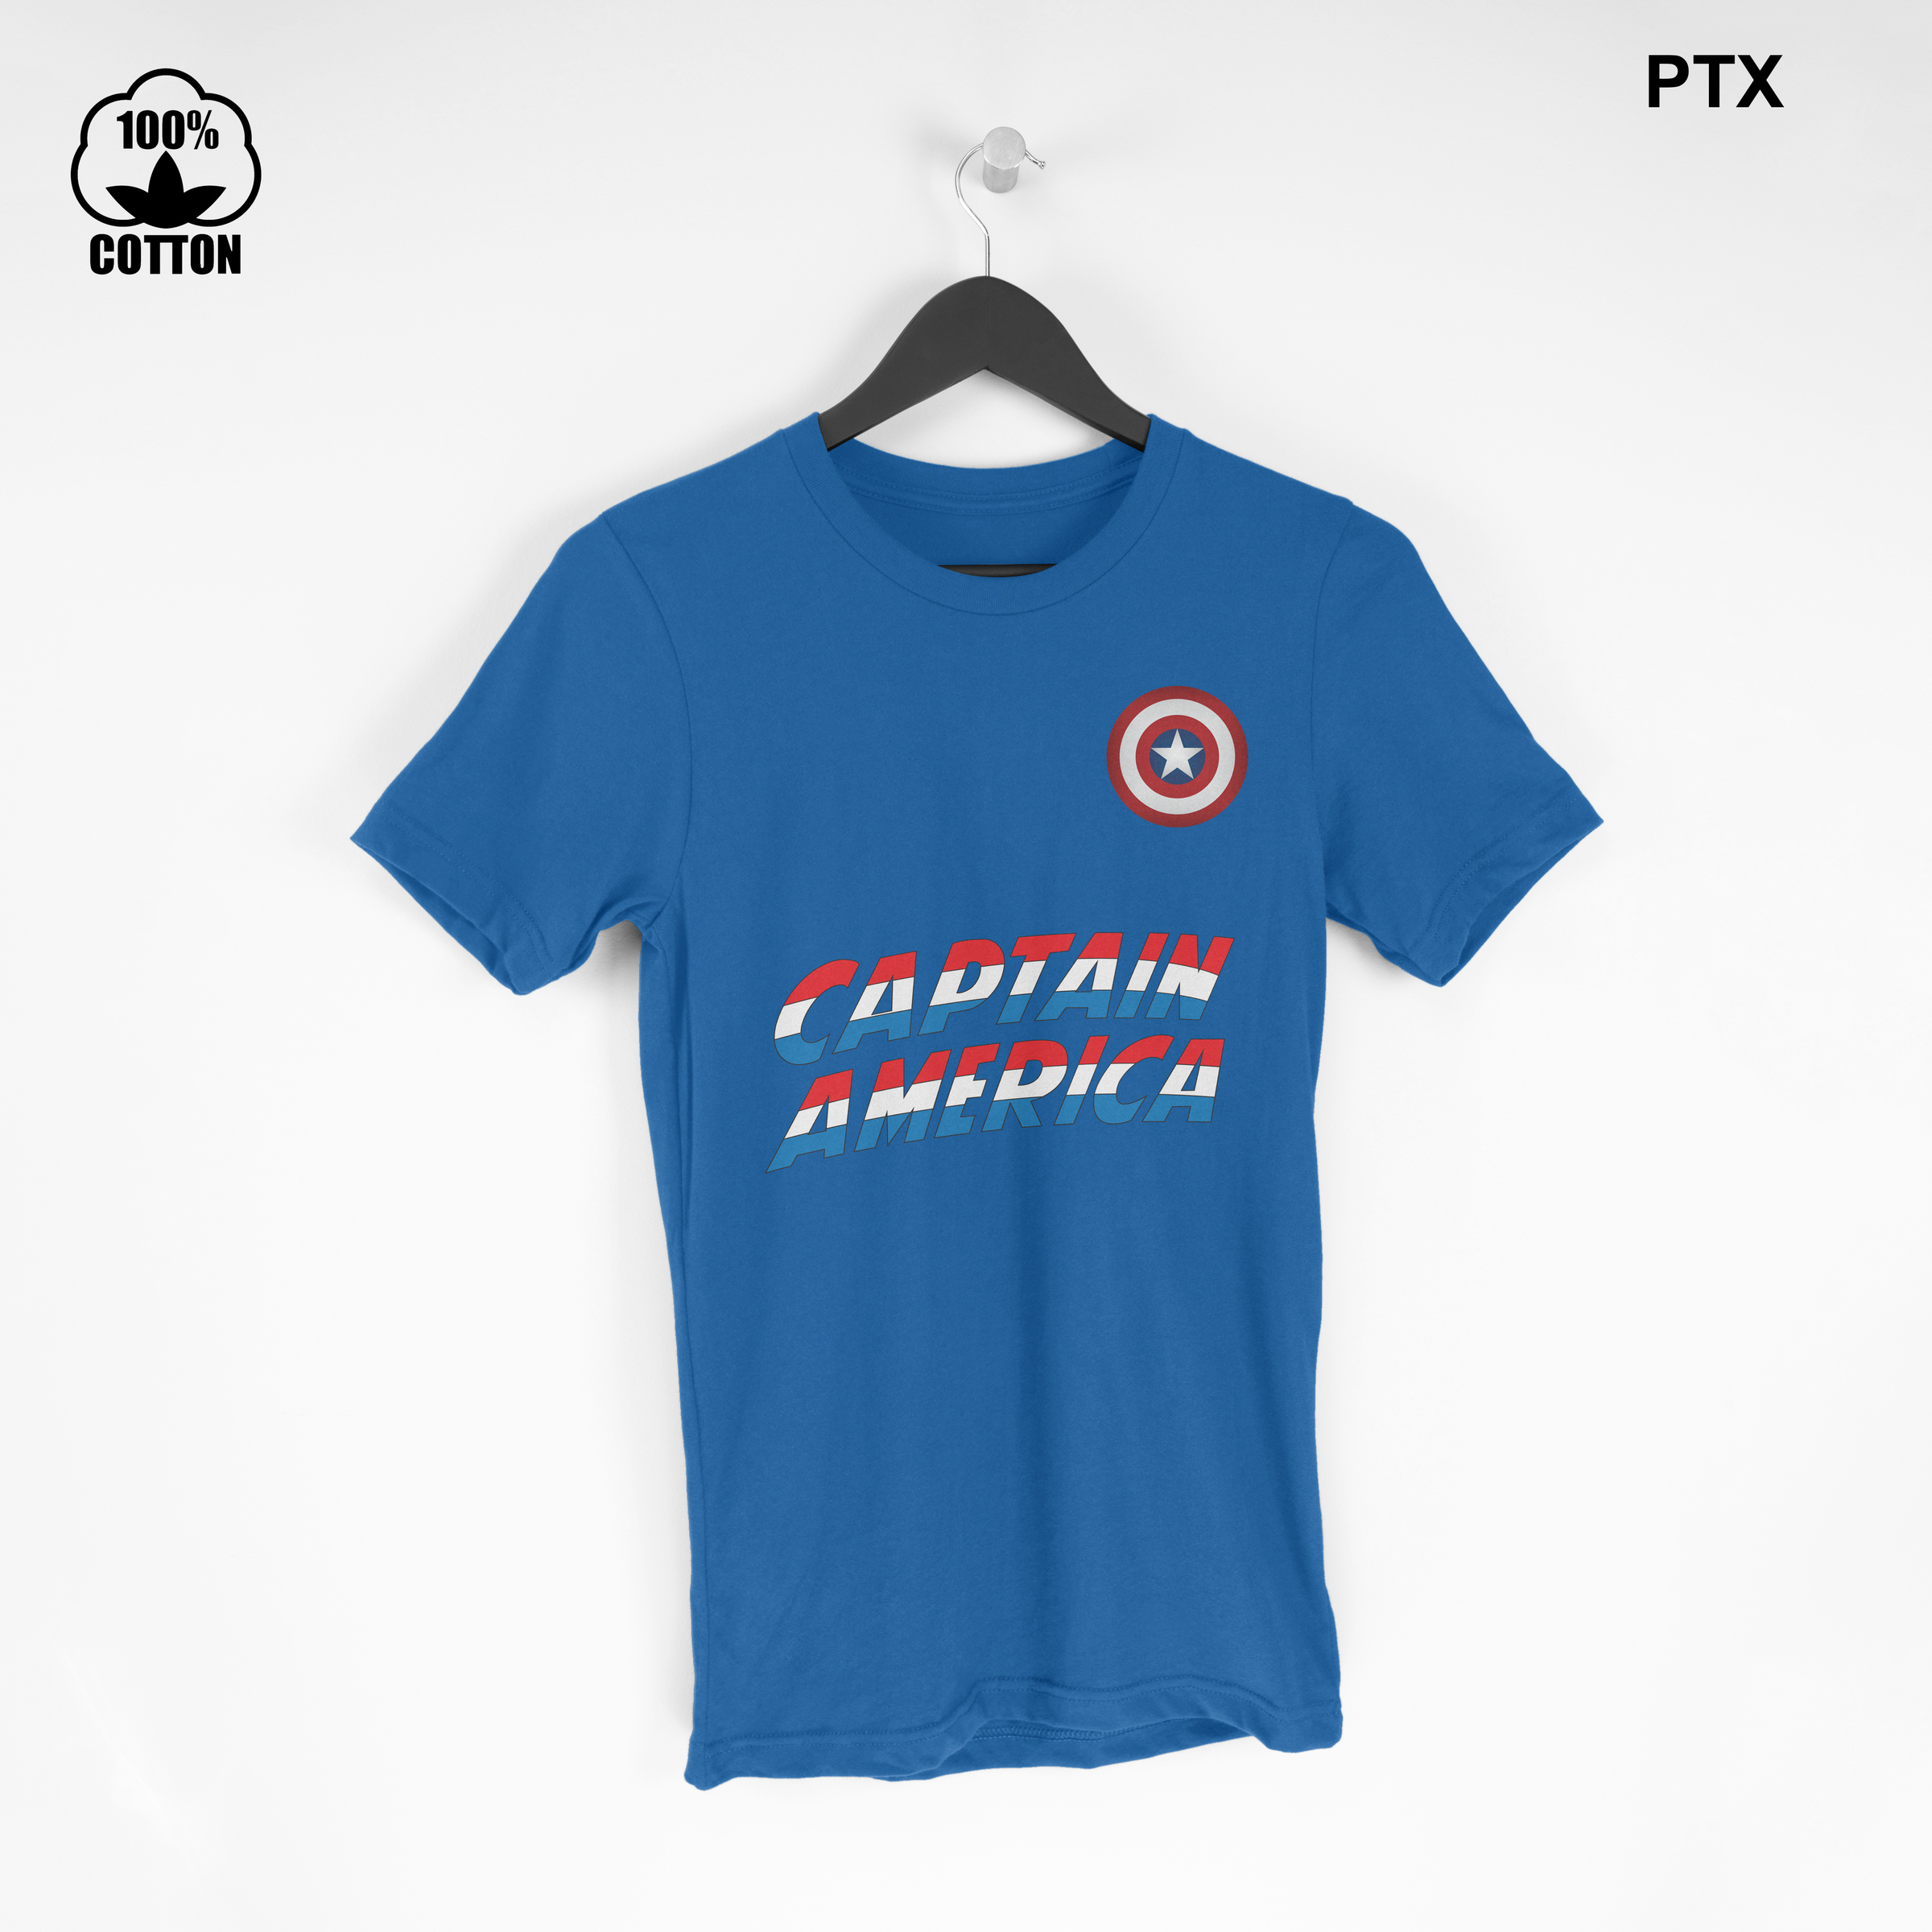 Captain America T-Shirt Size S-XXL USA RoyalBlue.jpg